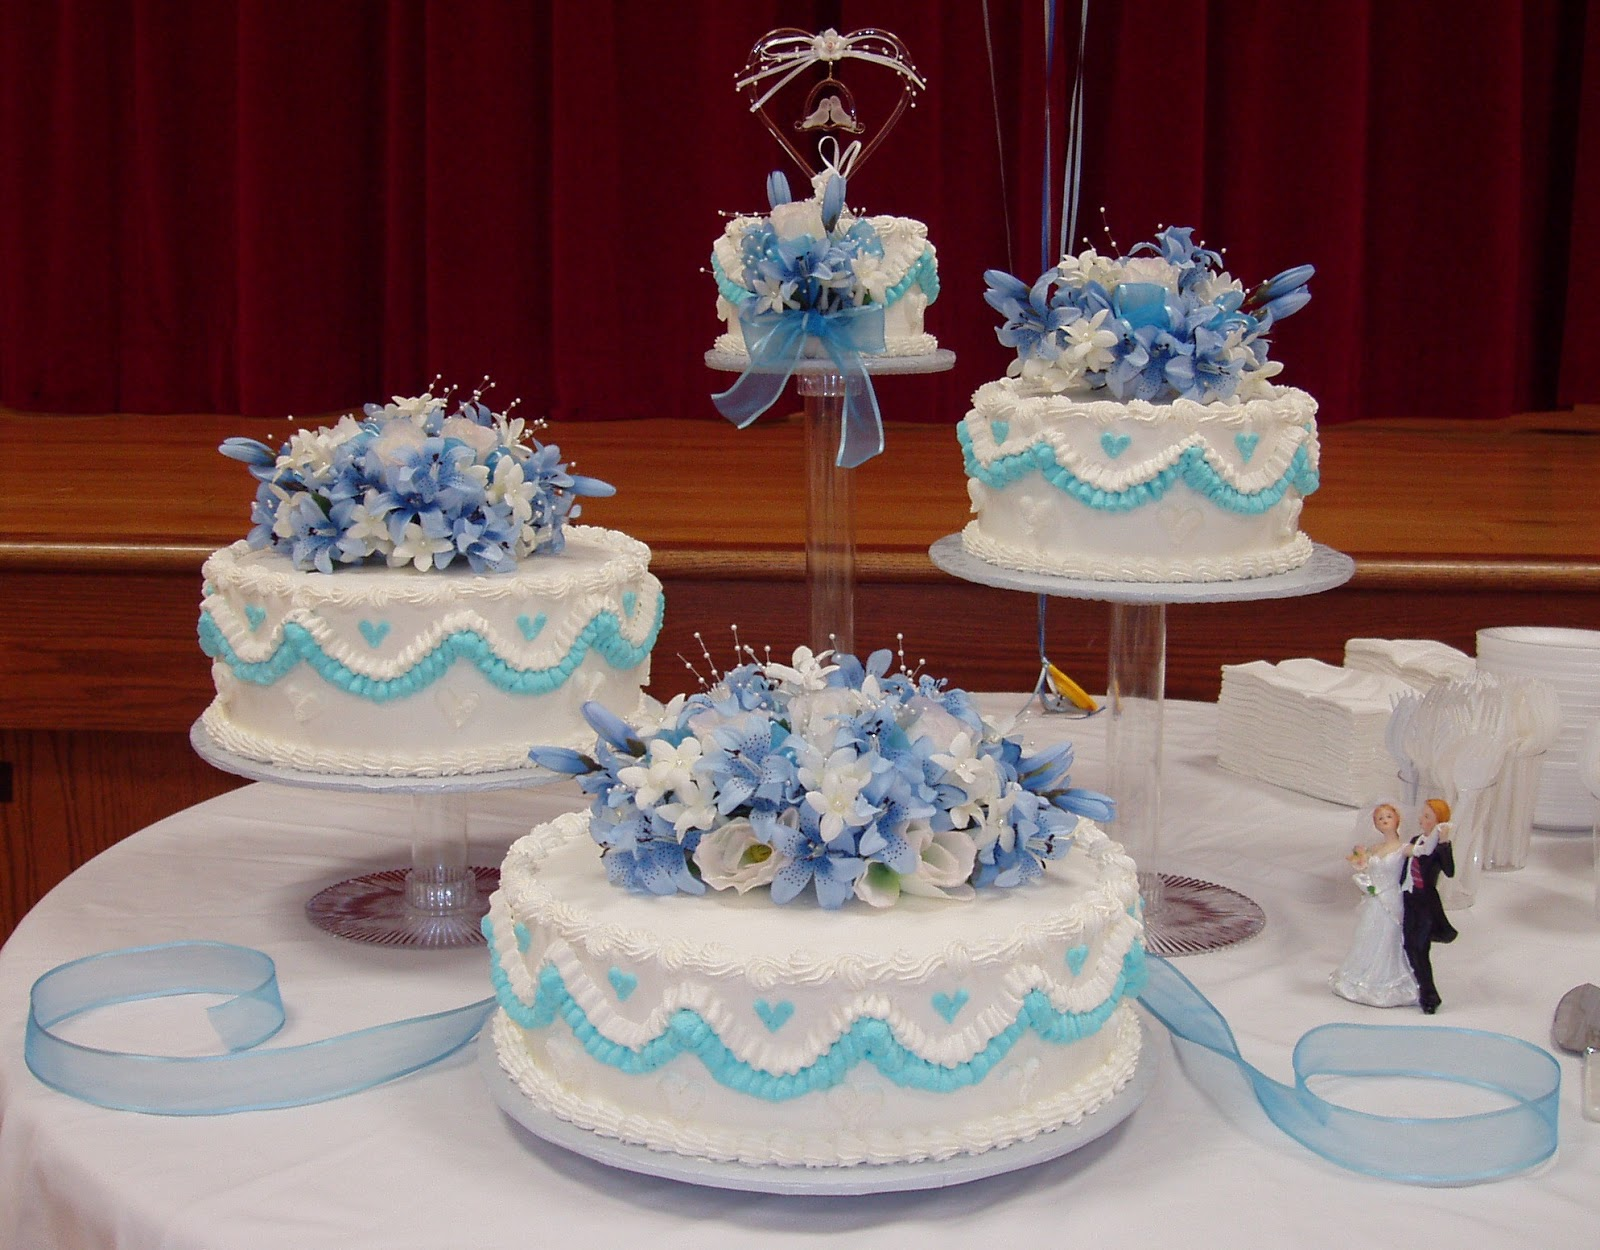 Michelle s Cakes: Wedding Cake with Blue Flowers